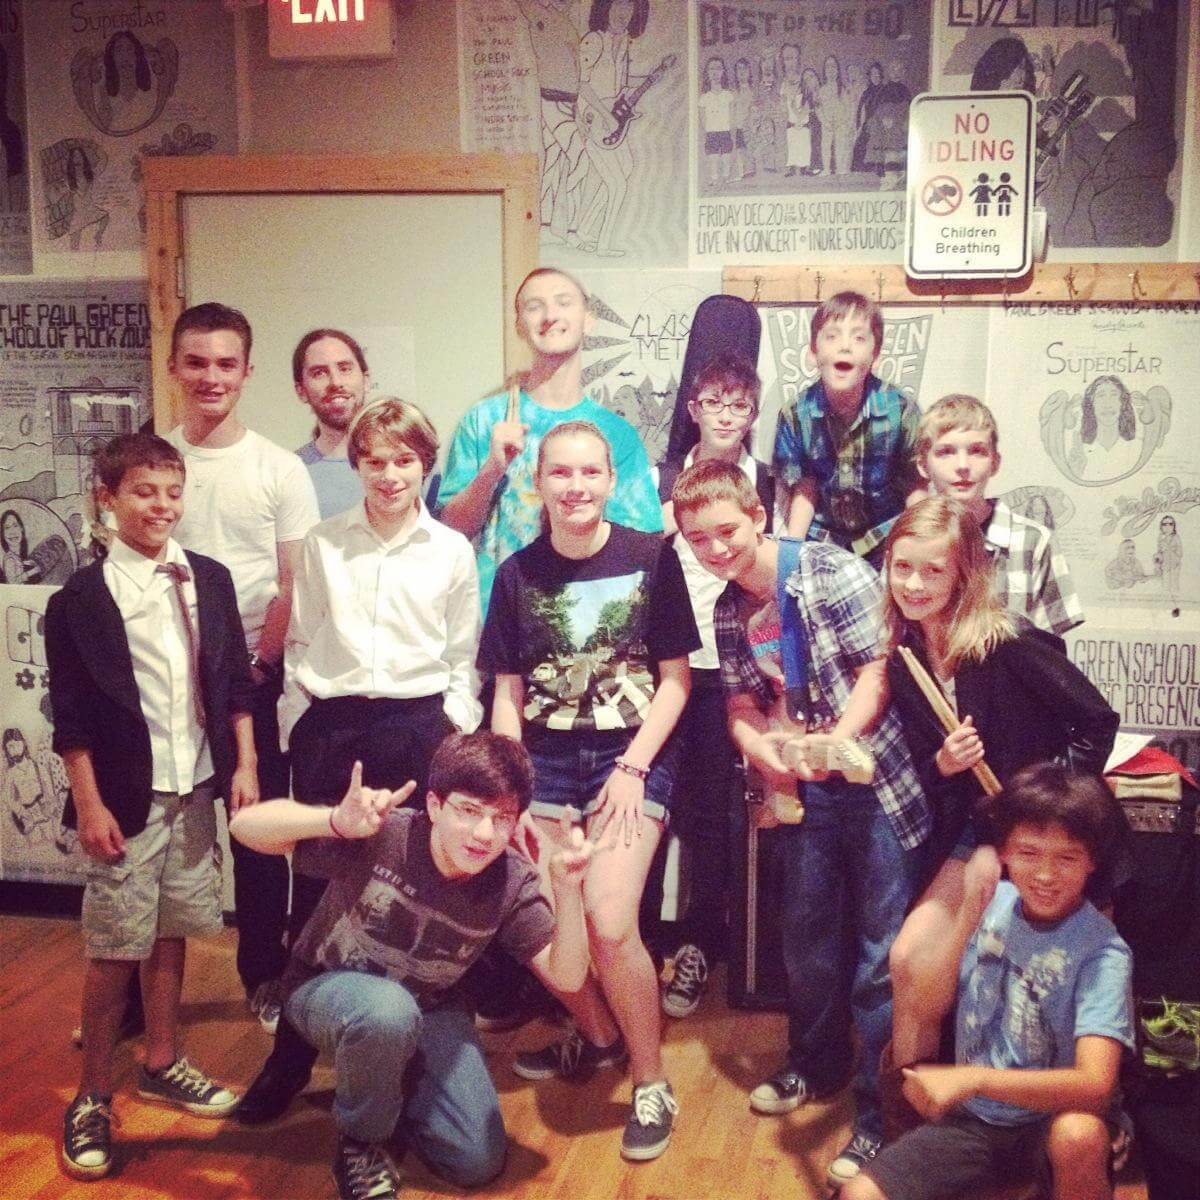 School of Rock Doylestown is a community. Our students don't just take music lessons, they make like-minded friends.